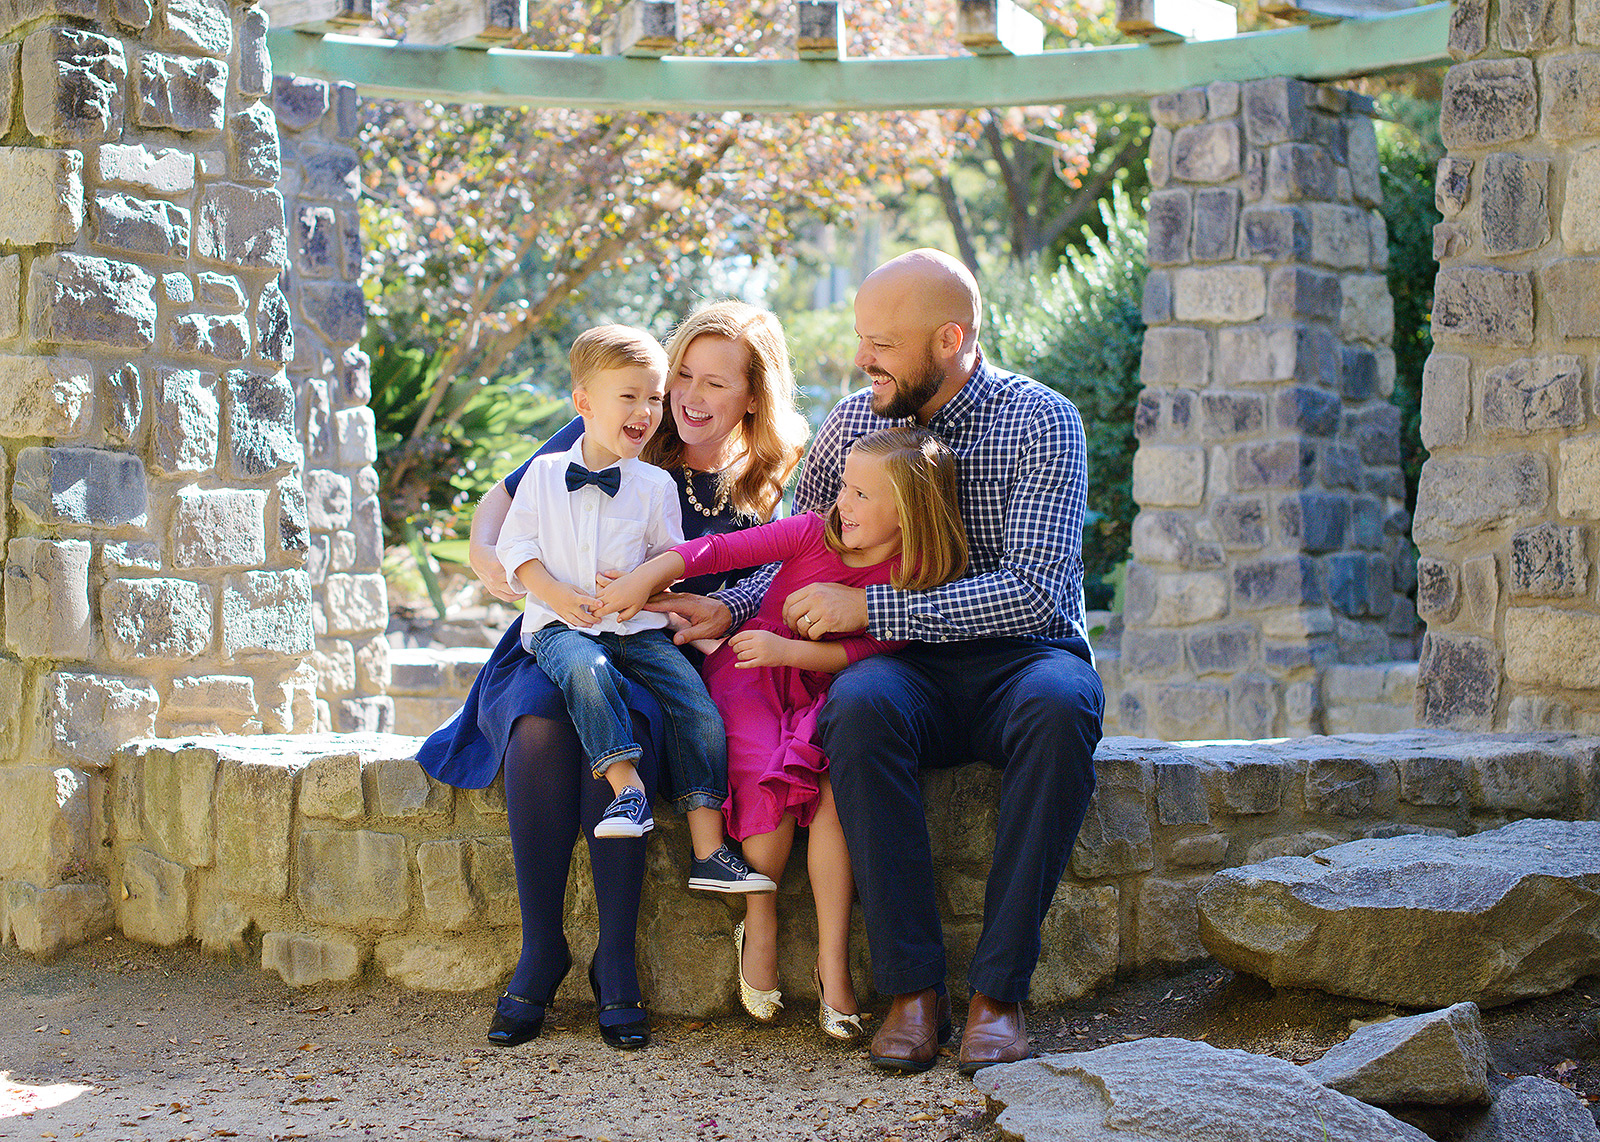 william land park stone wall garden family portraits for fall pictures with photographer jill carmel